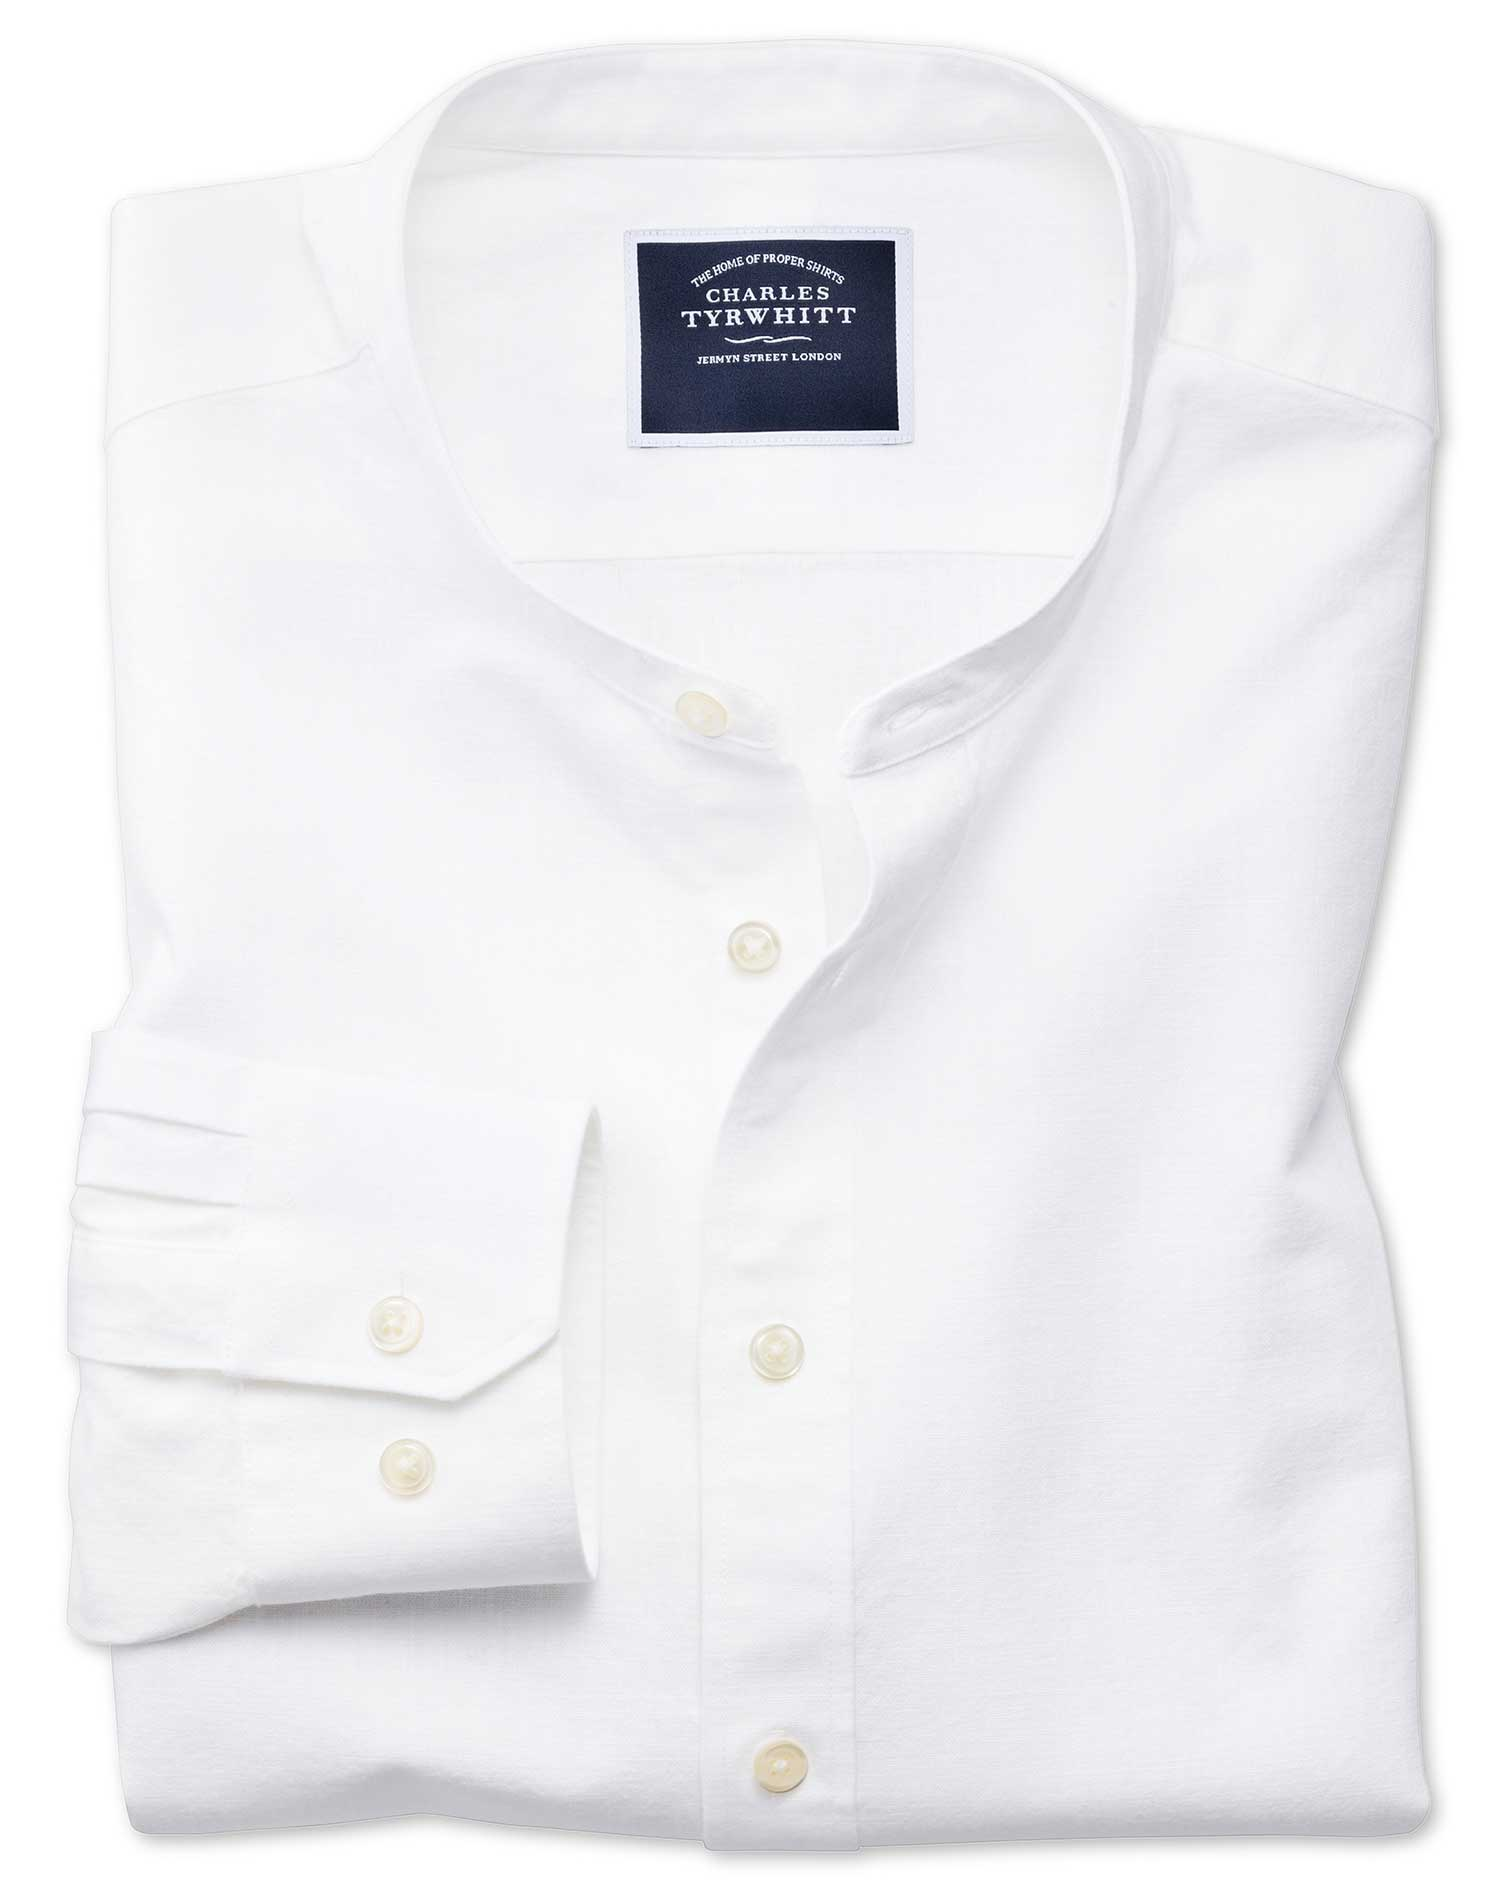 Slim Fit Collarless White Cotton Shirt Single Cuff Size Medium by Charles Tyrwhitt